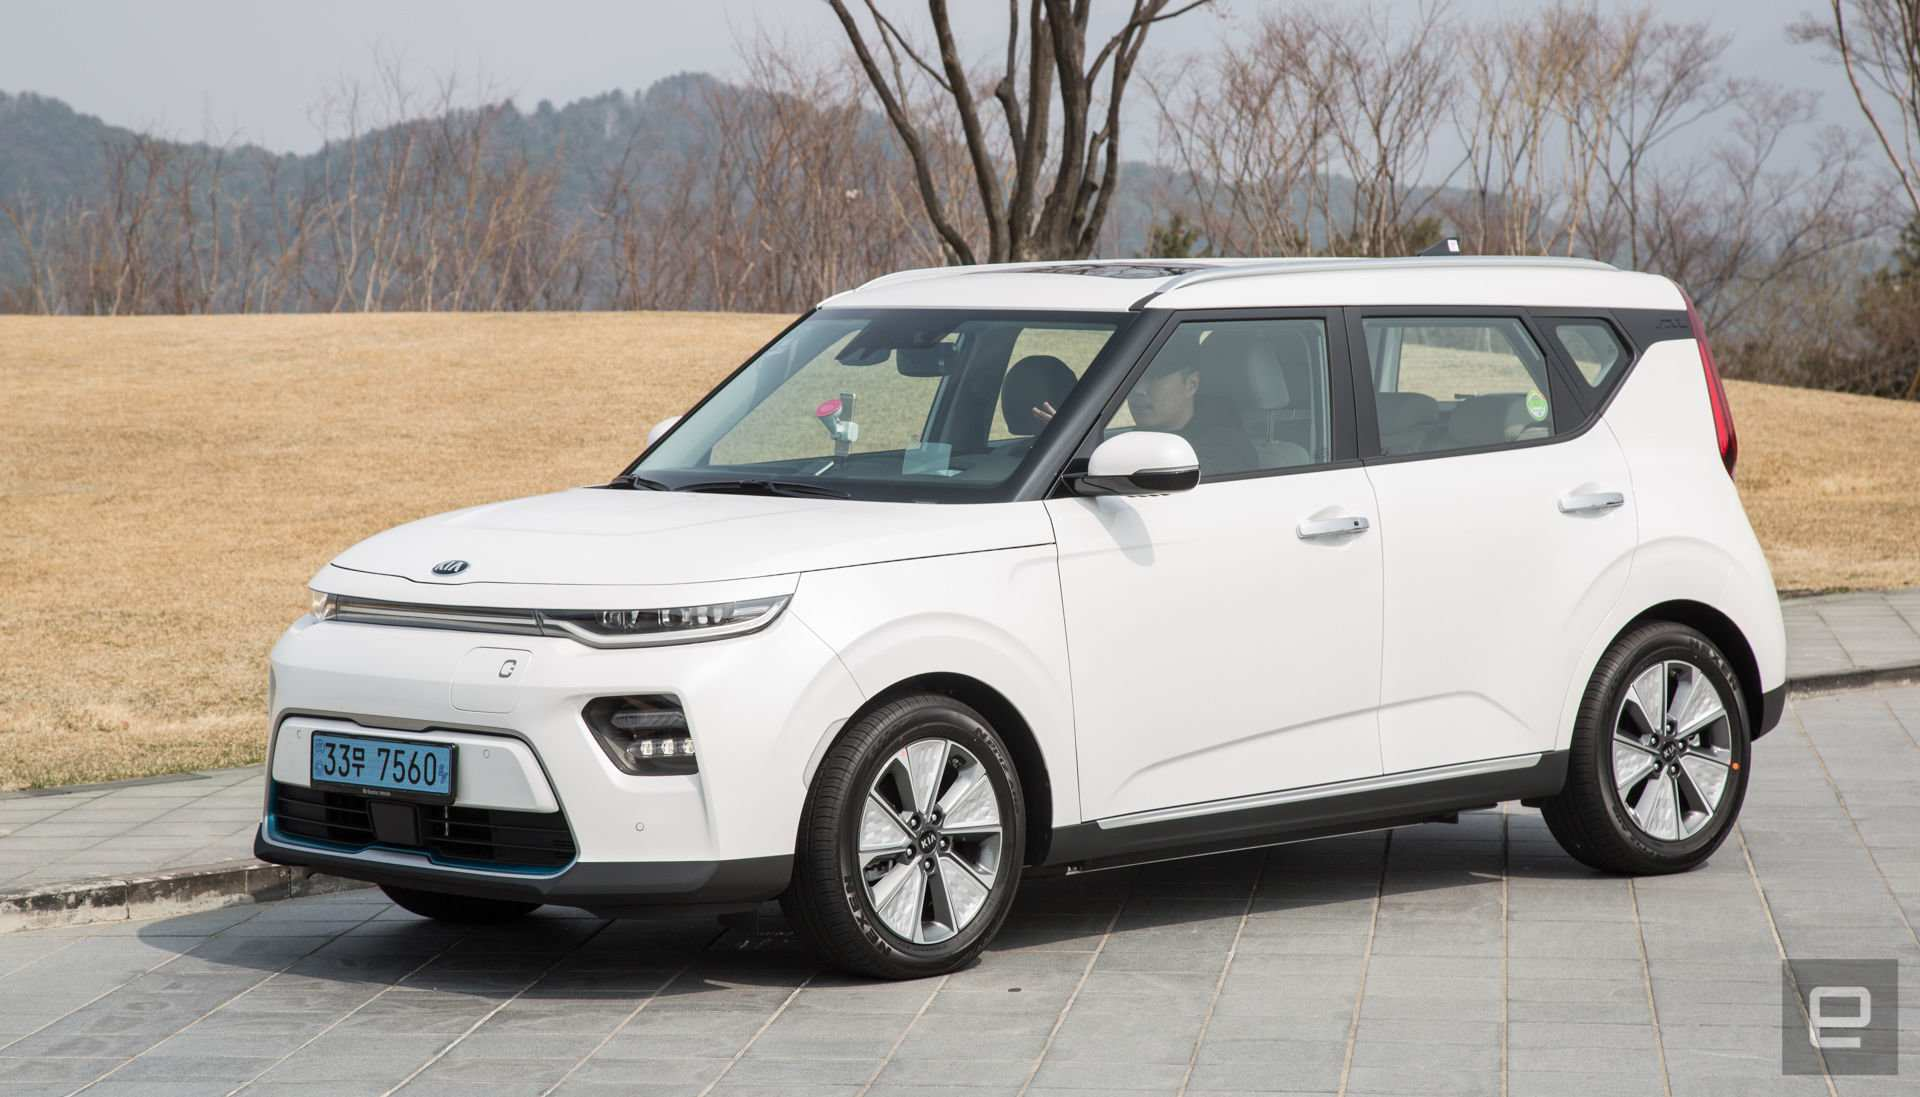 91 A 2020 Kia Soul Ev Availability Rumors